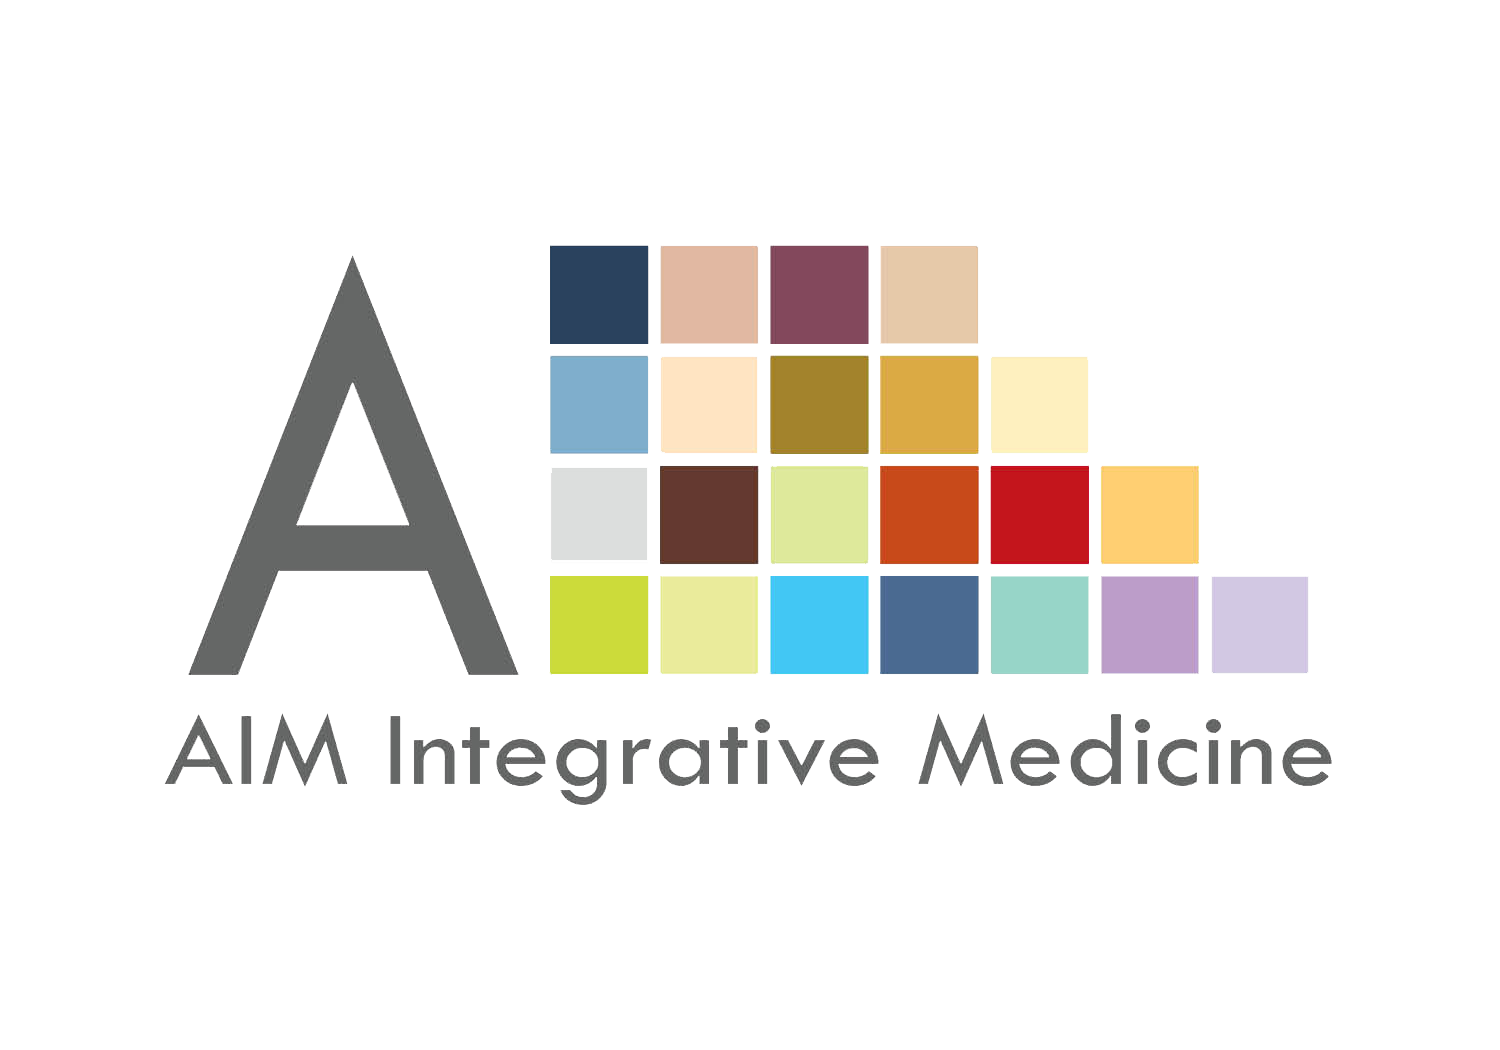 AIM Integrative Medicine